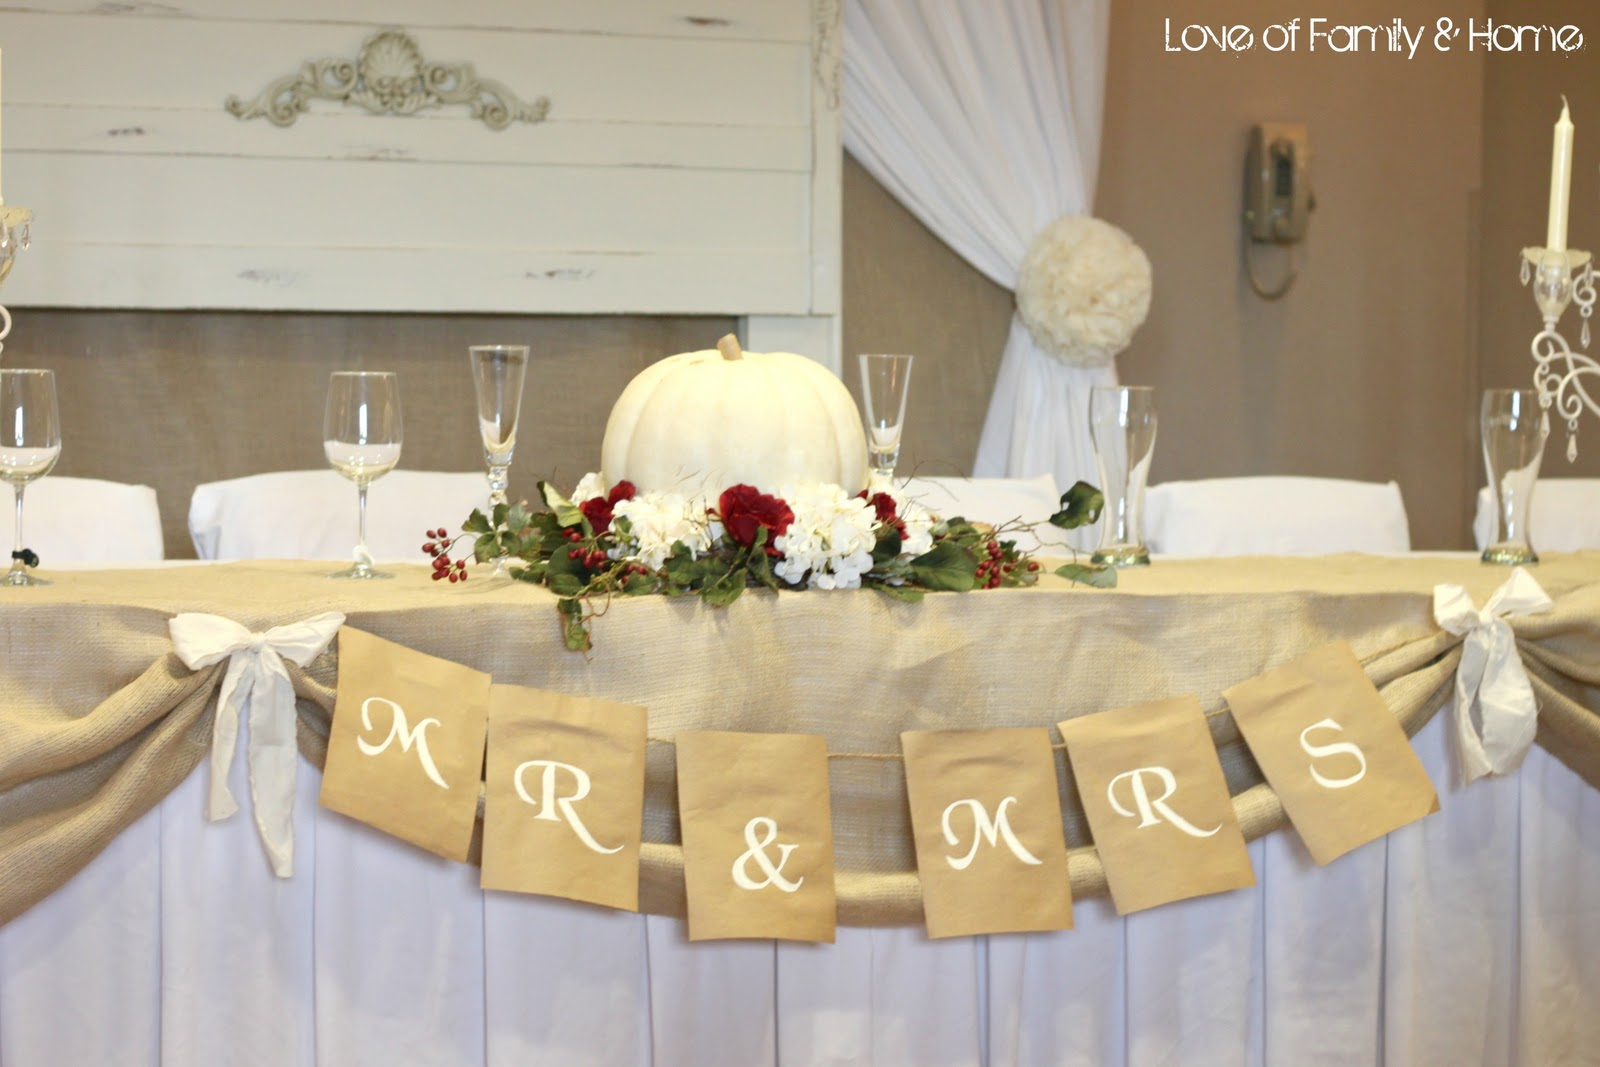 Diy wedding word banners love of family home diy wedding word banners solutioingenieria